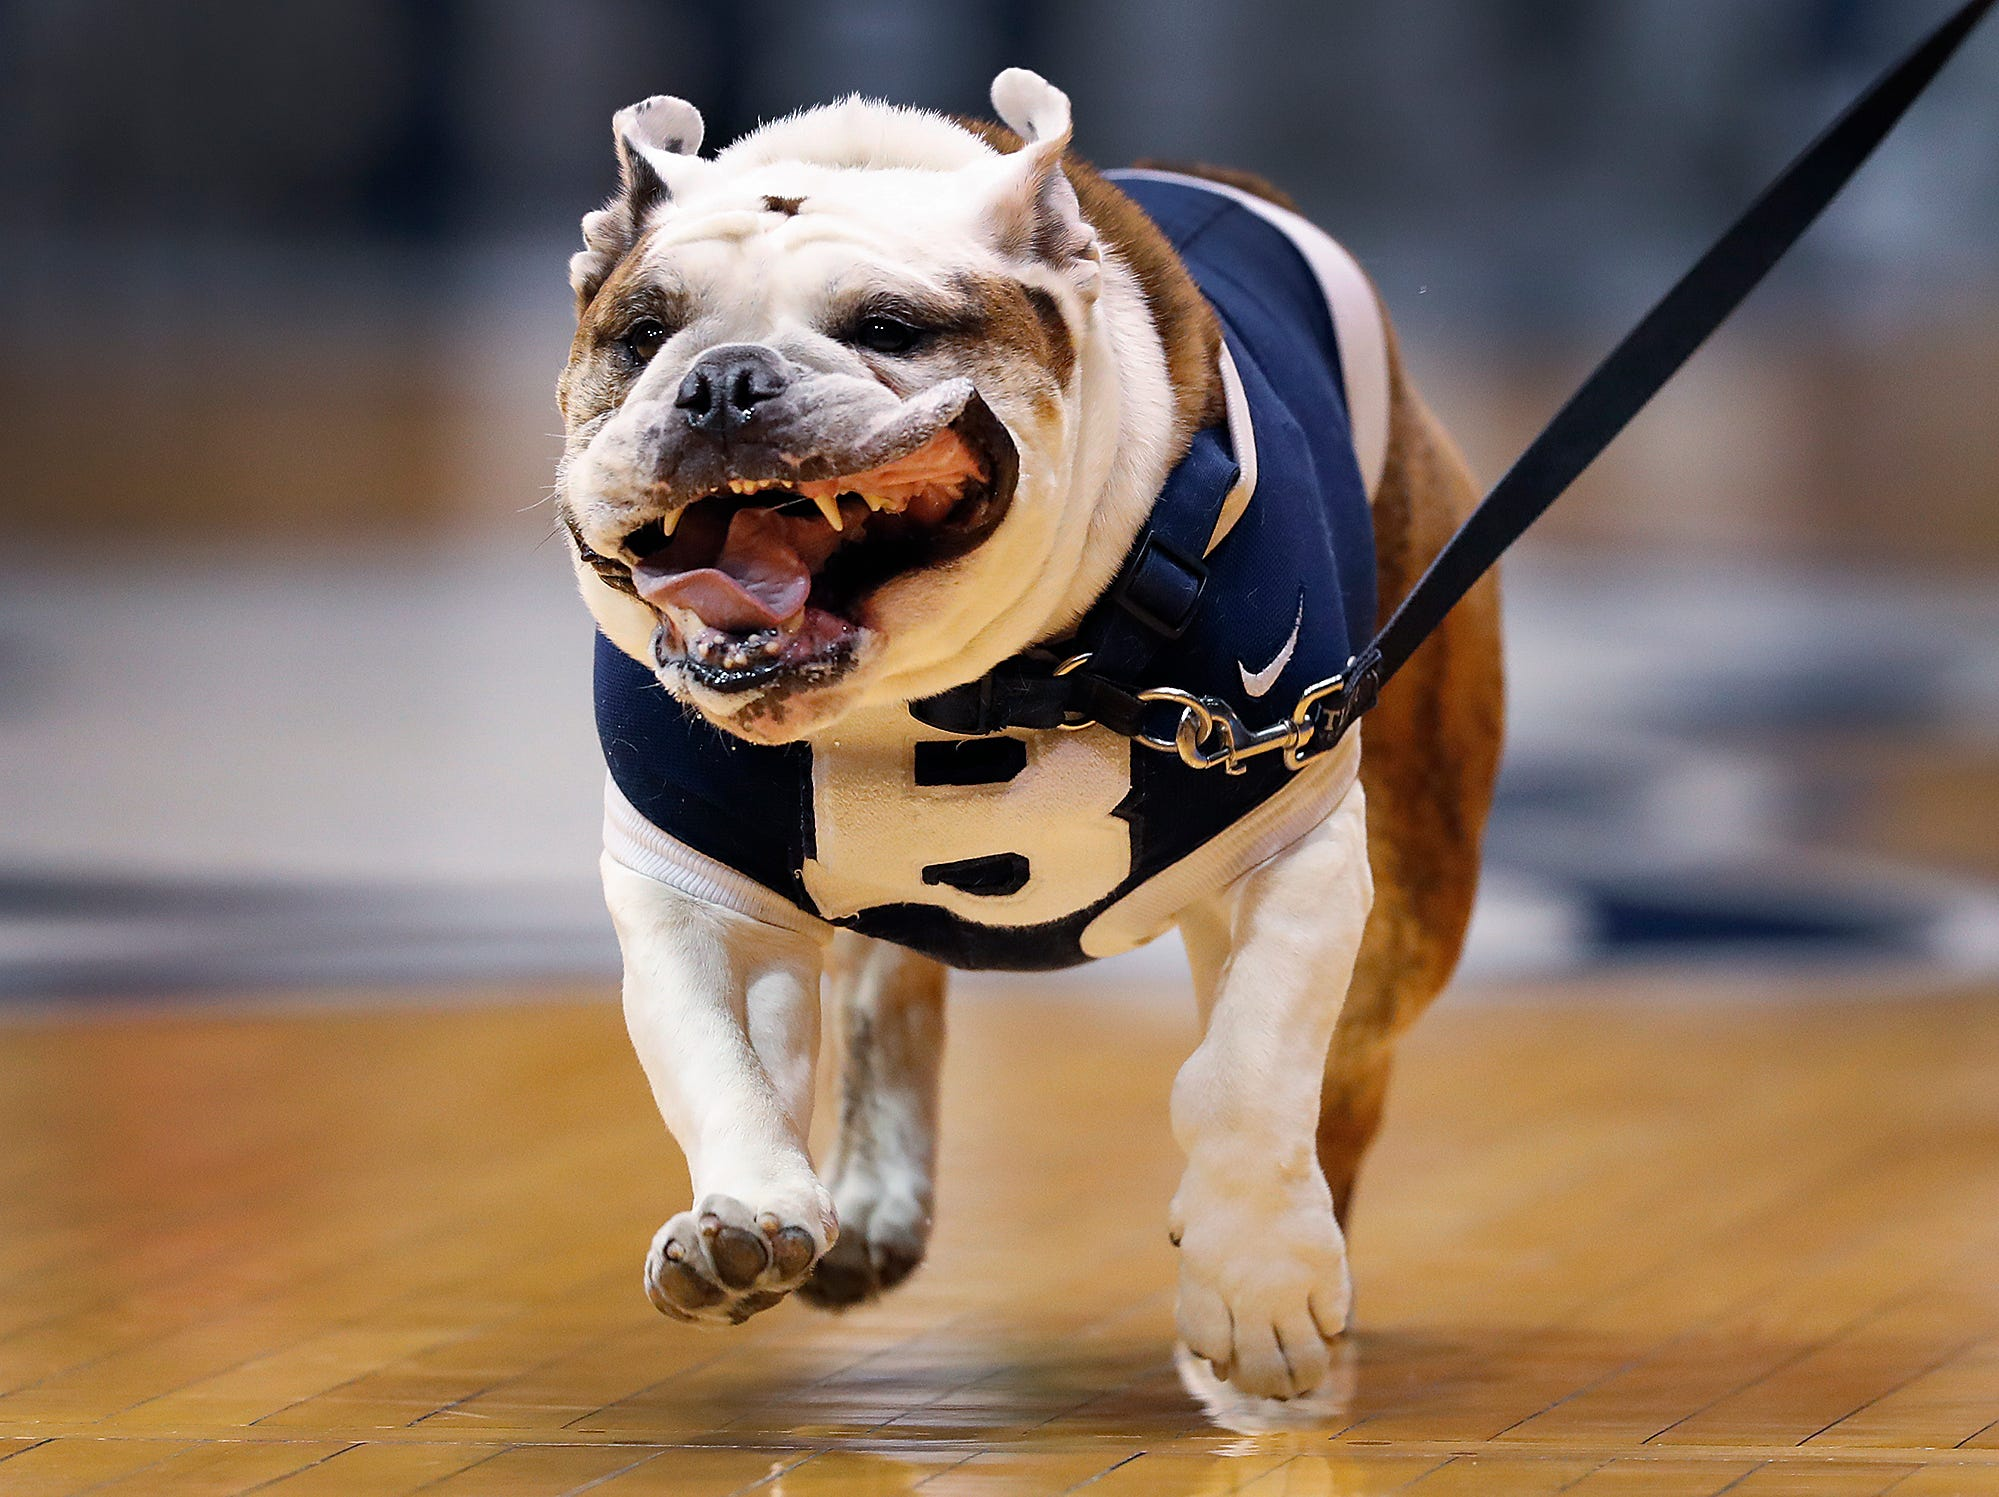 Butler Bulldogs mascot Trip runs the court before the start of their game against the Presbyterian Blue Hose at Hinkle Fieldhouse on Monday, Dec. 18, 2018.